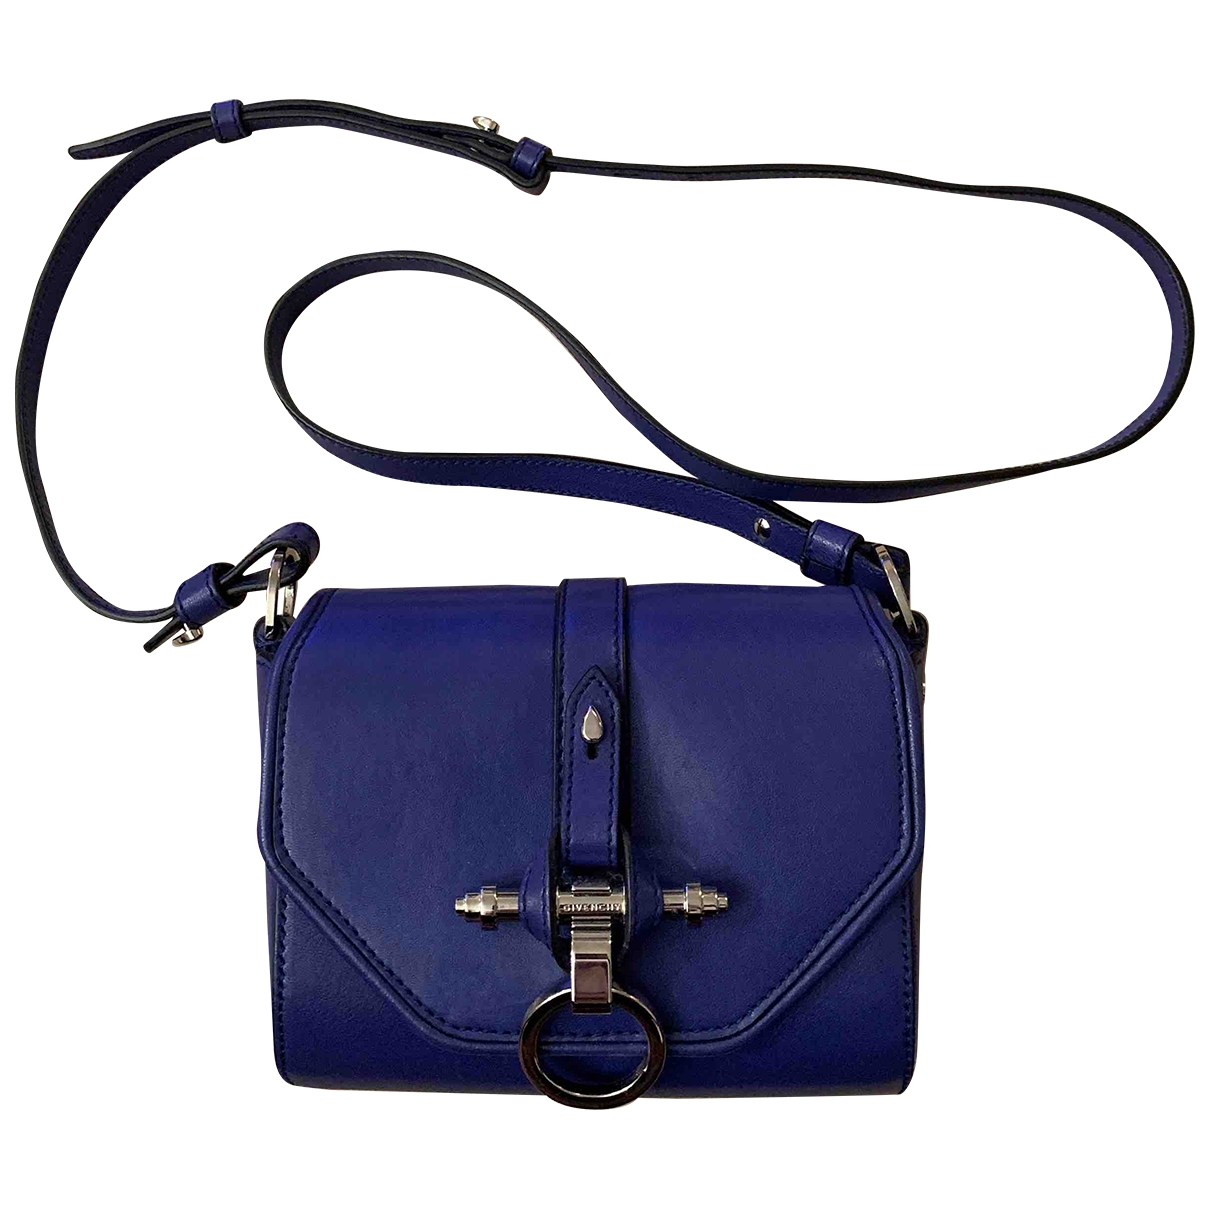 Givenchy Obsedia Blue Leather handbag for Women \N